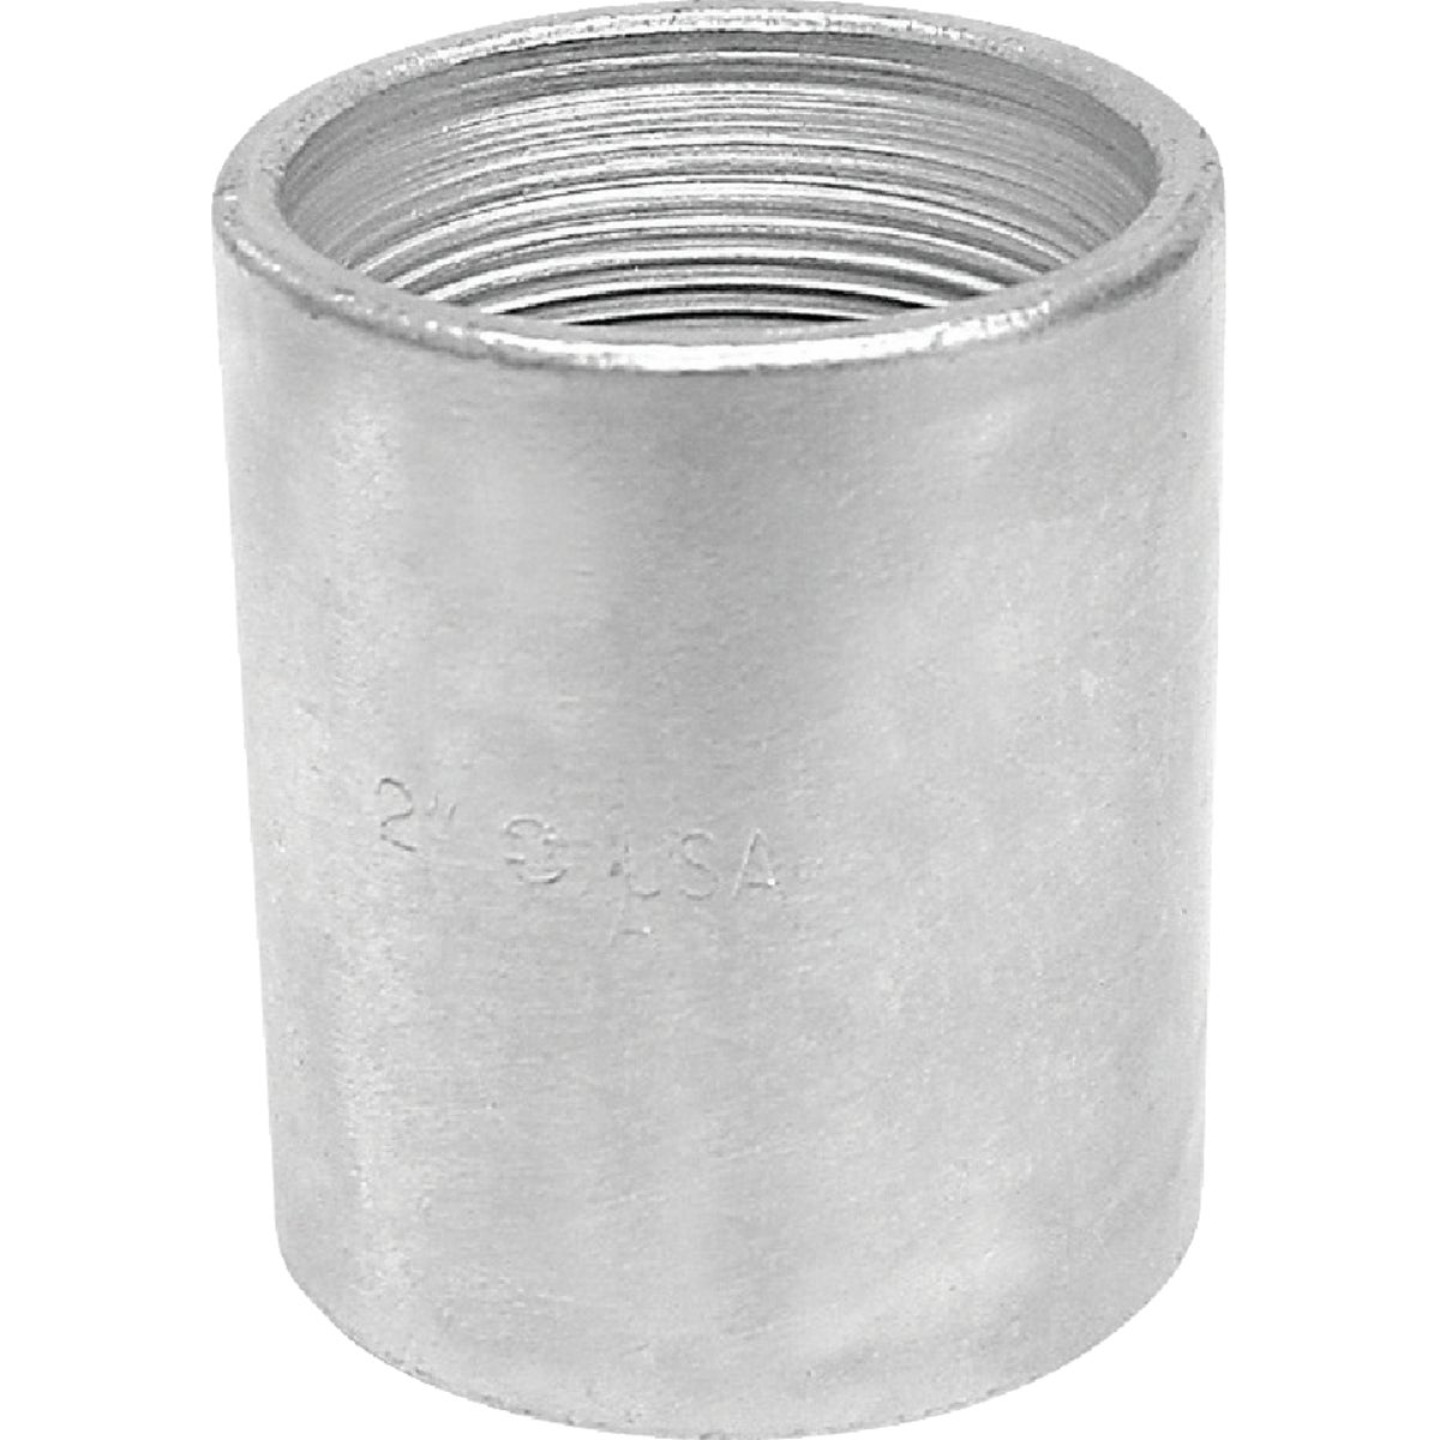 Anvil 3/8 In. x 3/8 In. FPT Standard Merchant Galvanized Coupling Image 1